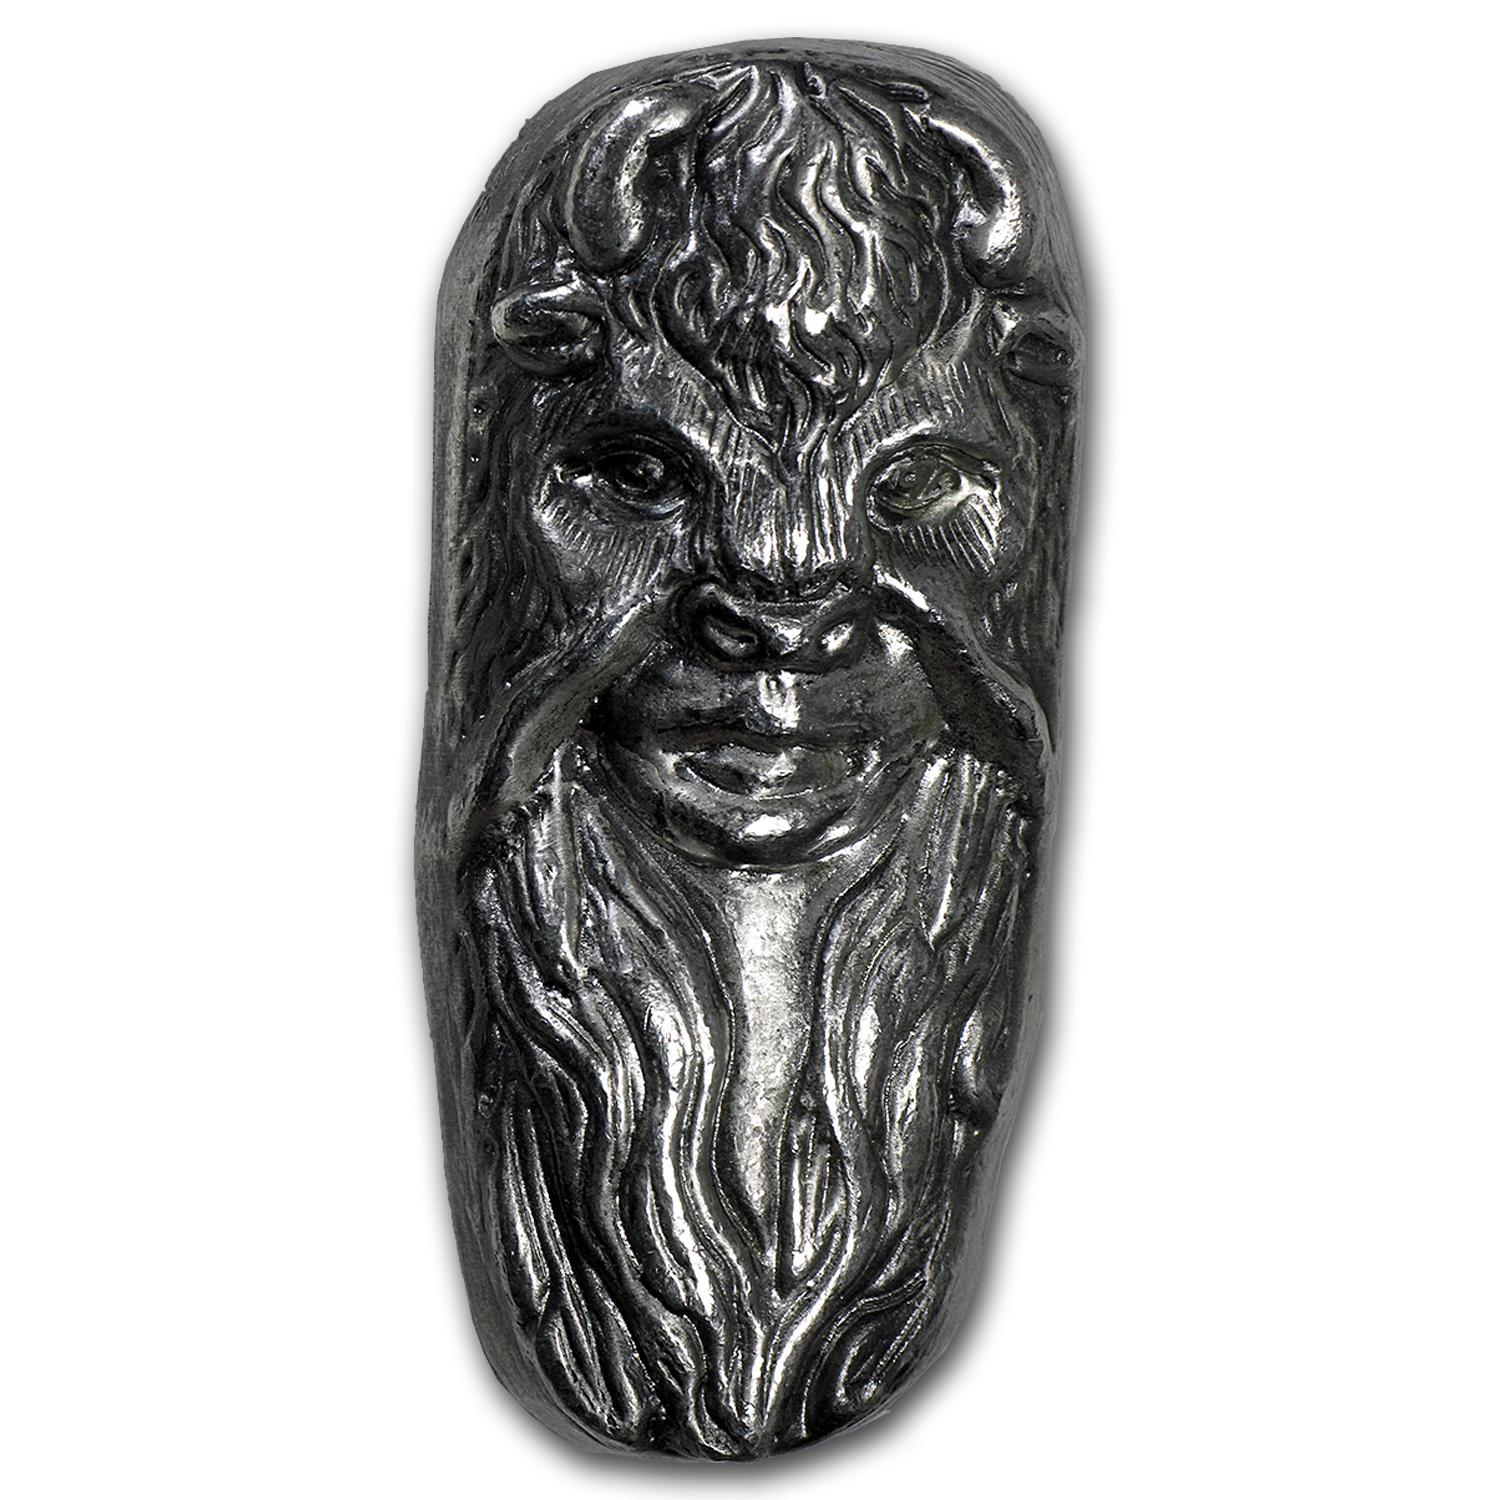 7 oz Silver Bar - Bison Bullion (Bison Mask Girl)